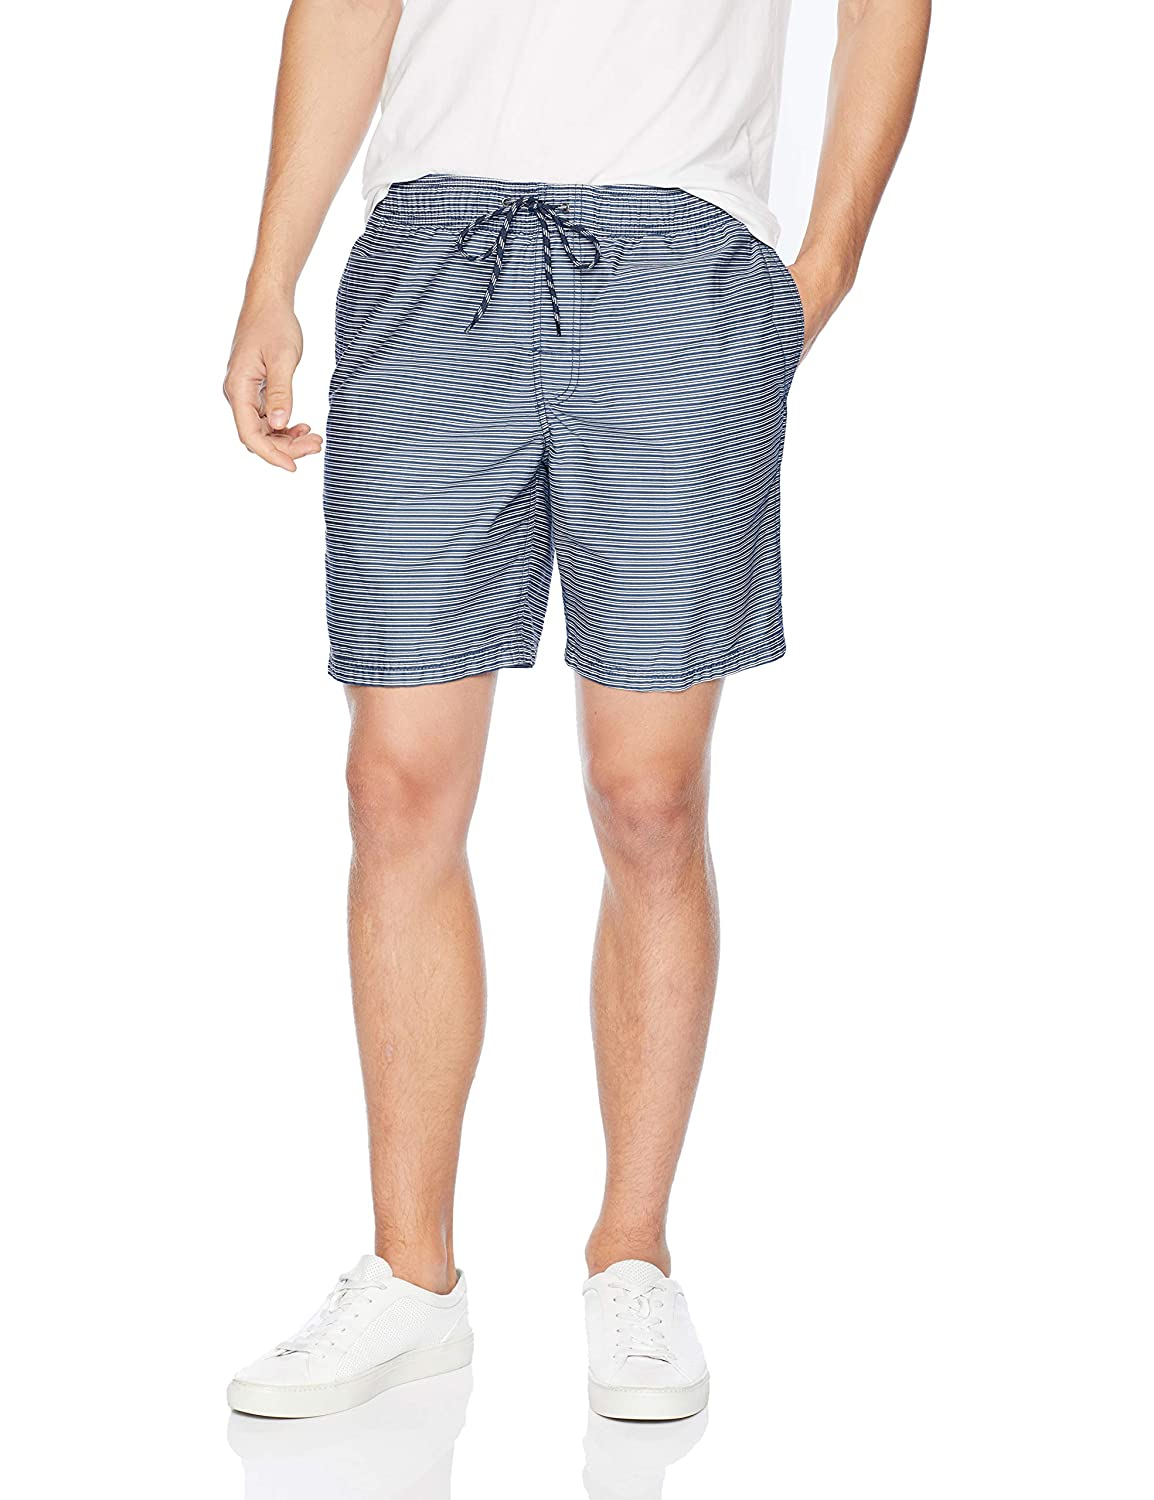 Essentials Mens Stripe Drawstring Walk Short